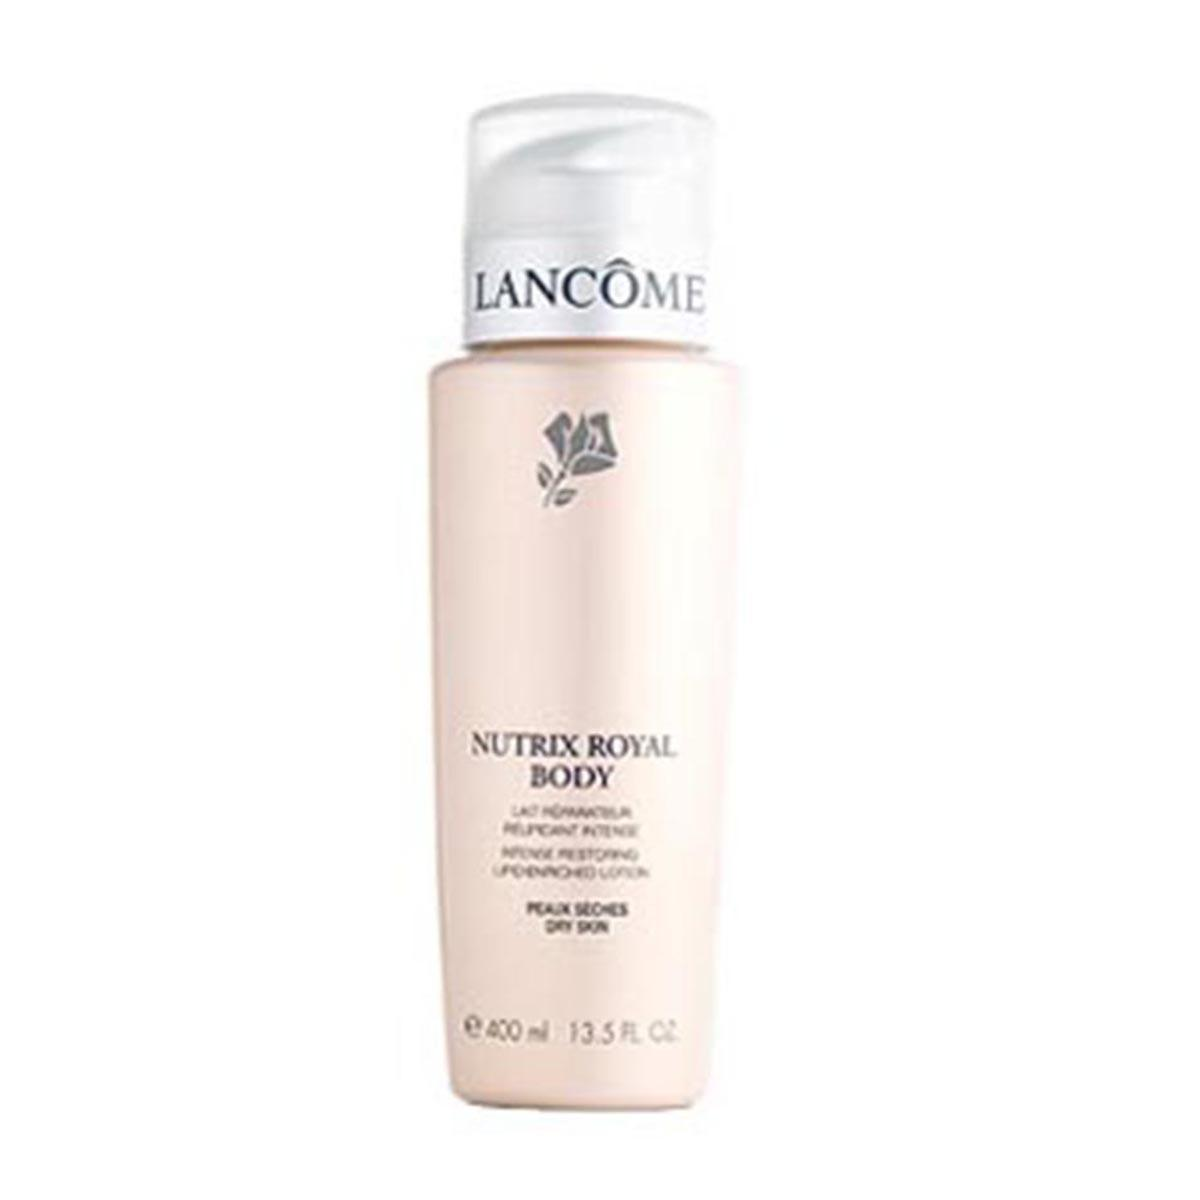 Lancome fragrances Nutri Royal Body Milk 400ml